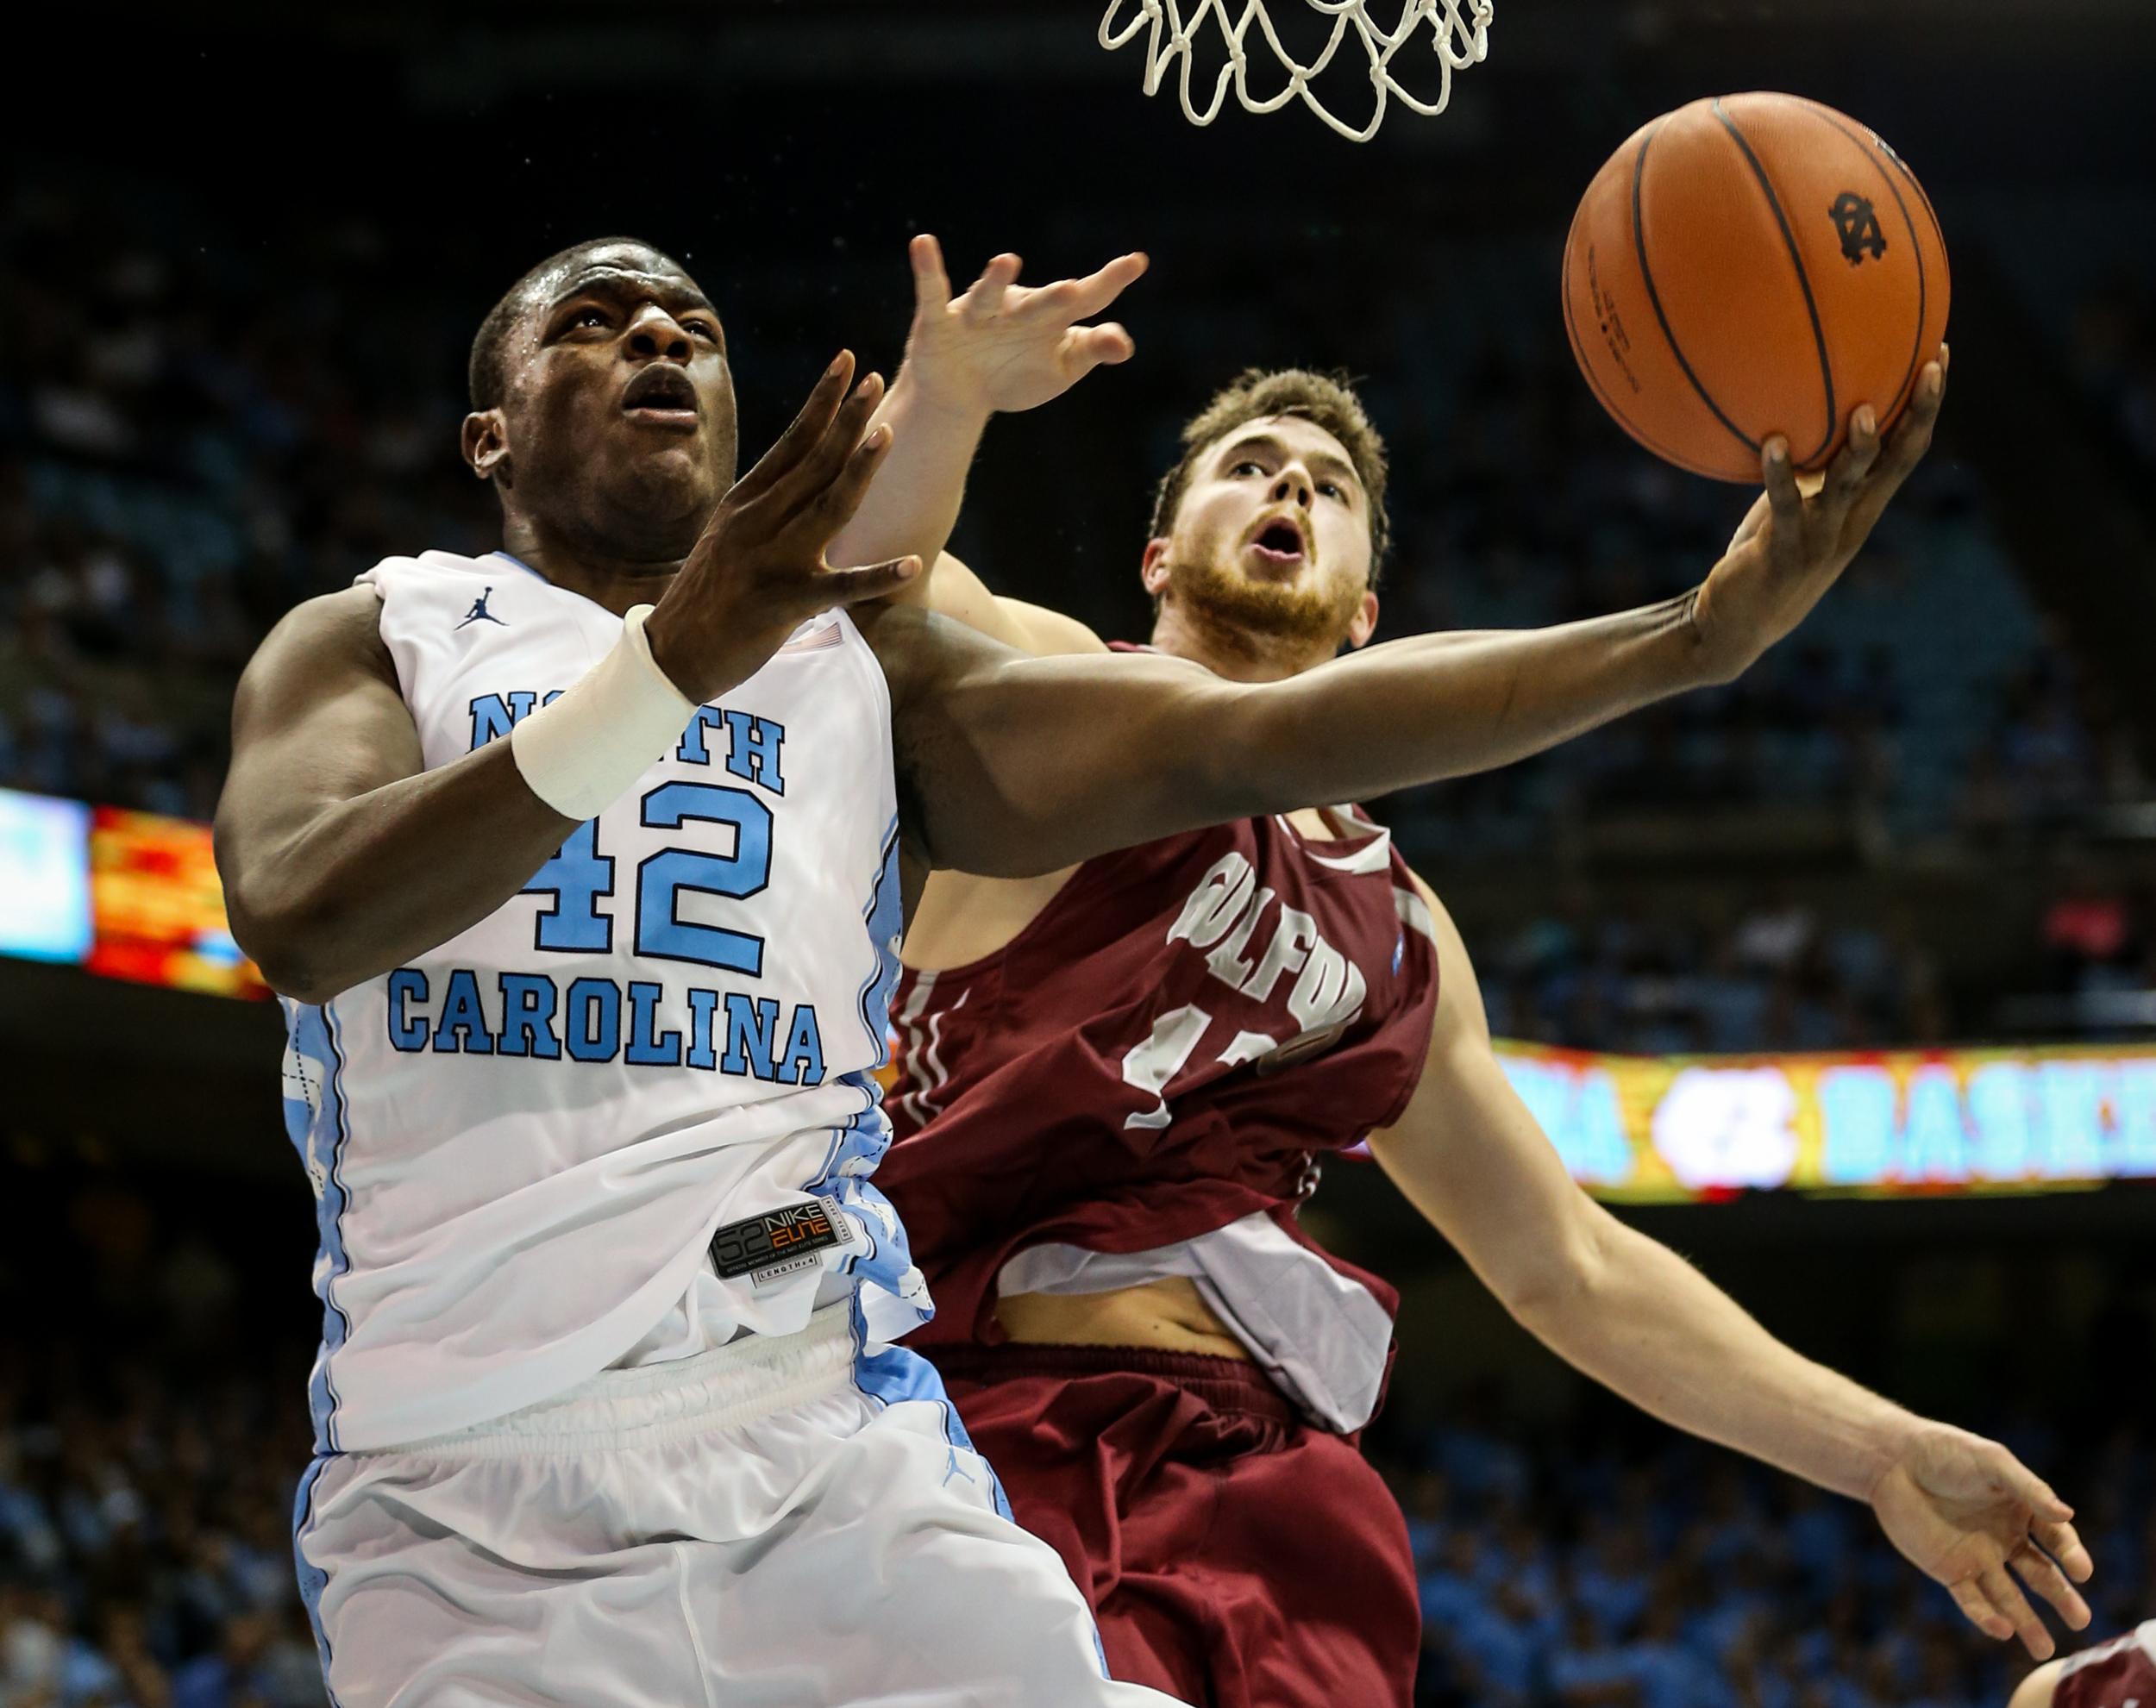 Joel James of the North Carolina Tarheels goes up for a layup as Will Freeman of Guilford attempts to block the shot during the men's preseason exhibition game at the Dean Smith Center on Friday, Nov. 6, 2015. UNC defeated Guilford 99-49.